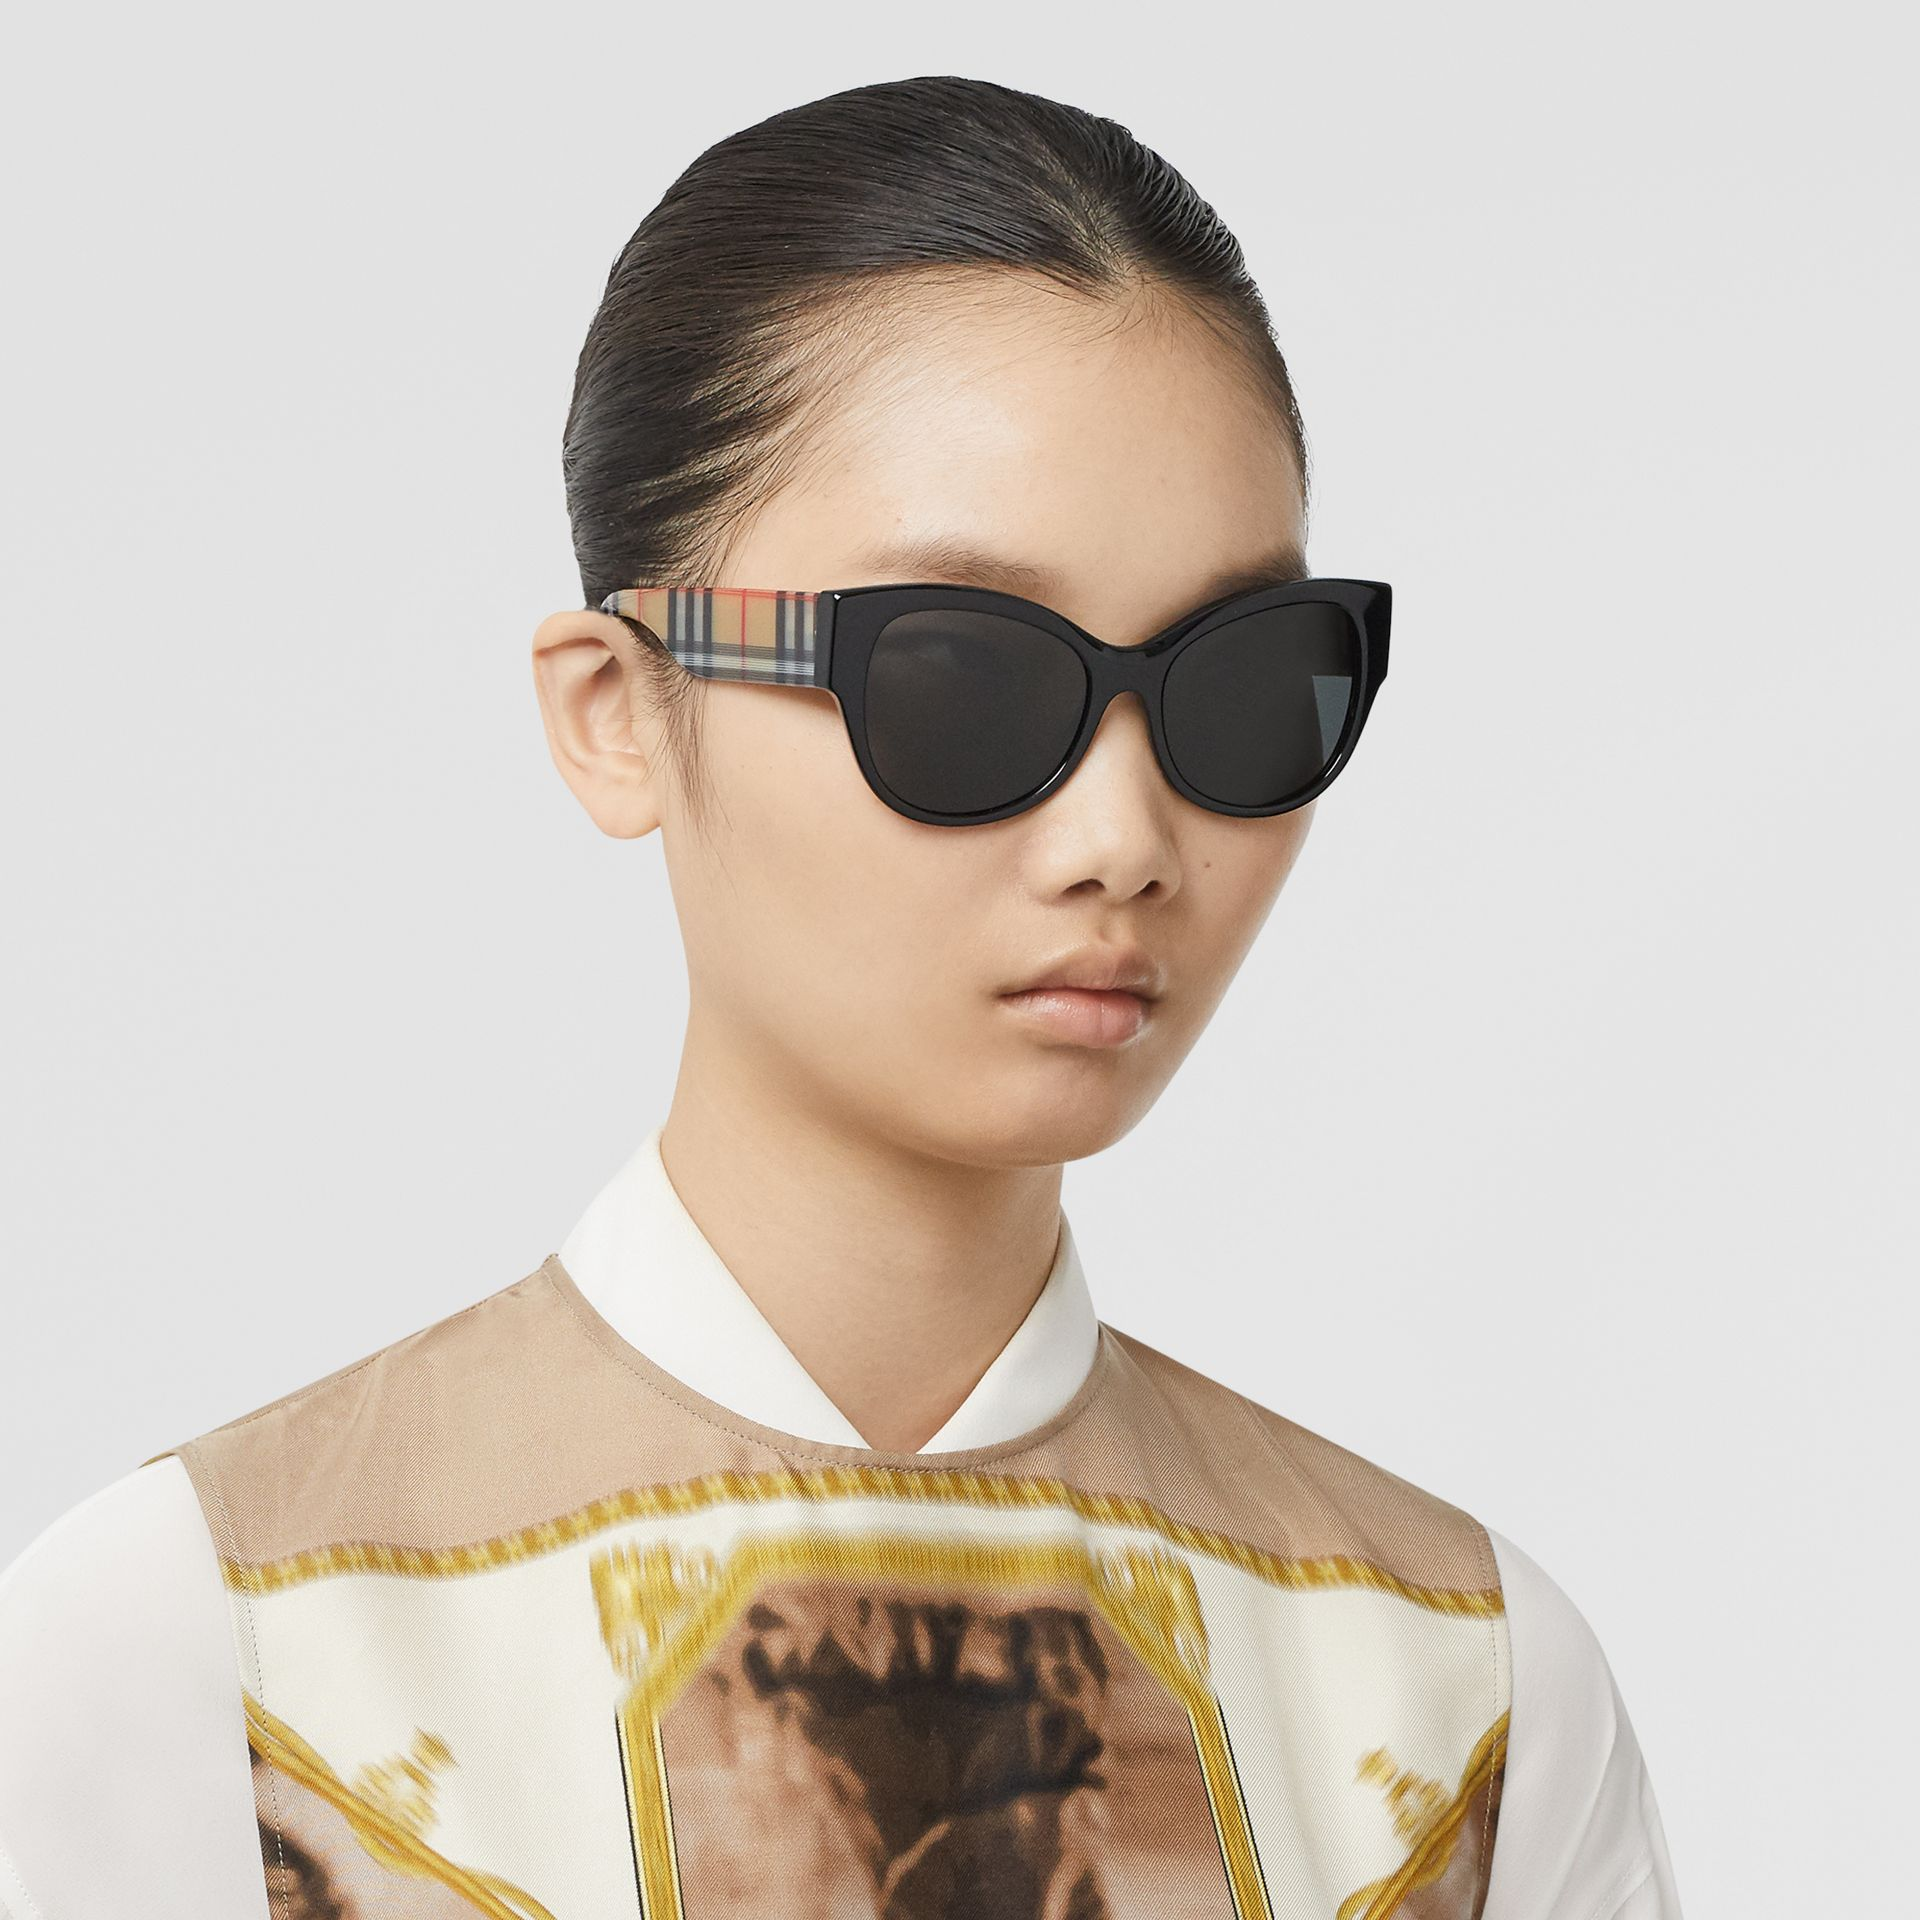 Vintage Check Detail Butterfly Frame Sunglasses in Black / Beige - Women | Burberry Canada - gallery image 2